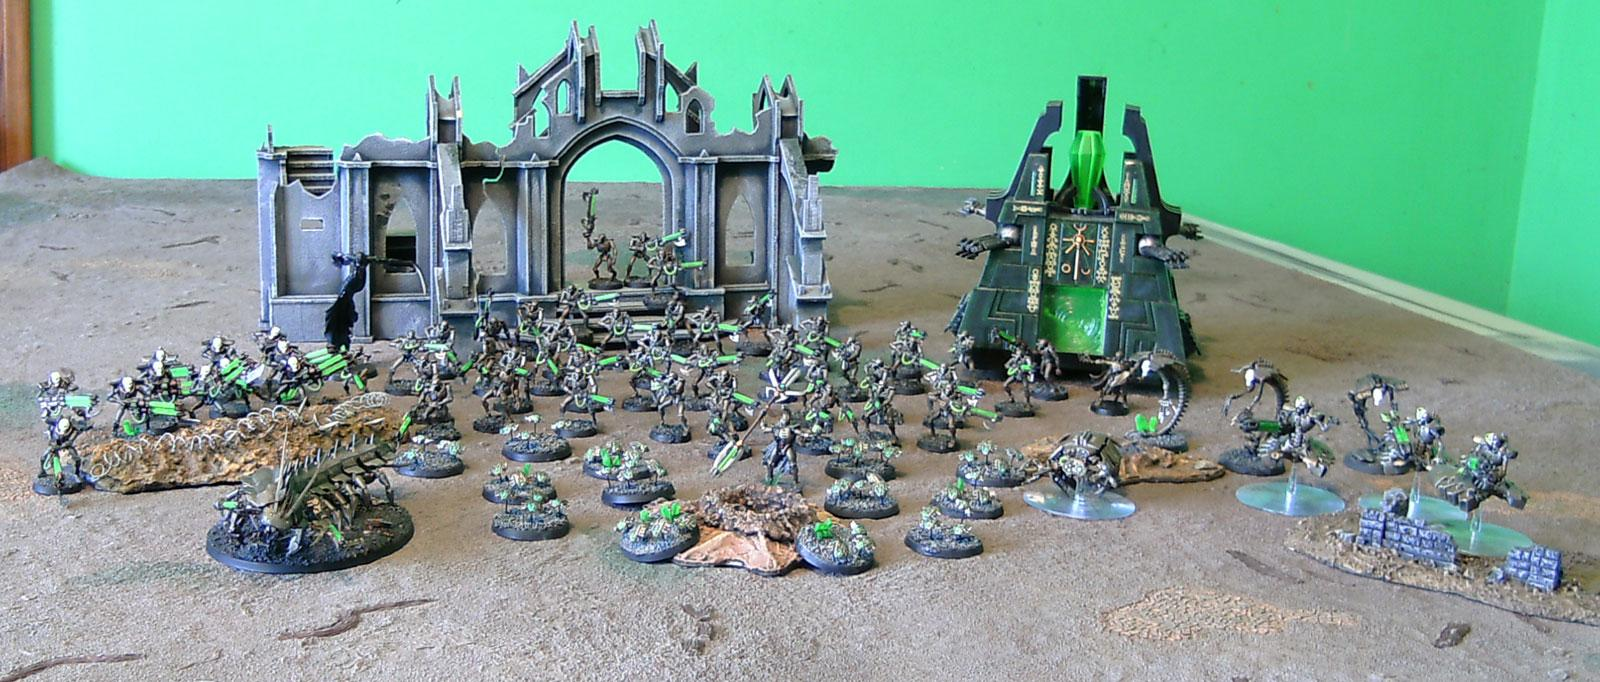 Army Profile, LED, Necrons, Ouze, Tomb Stalker, Warhammer 40,000